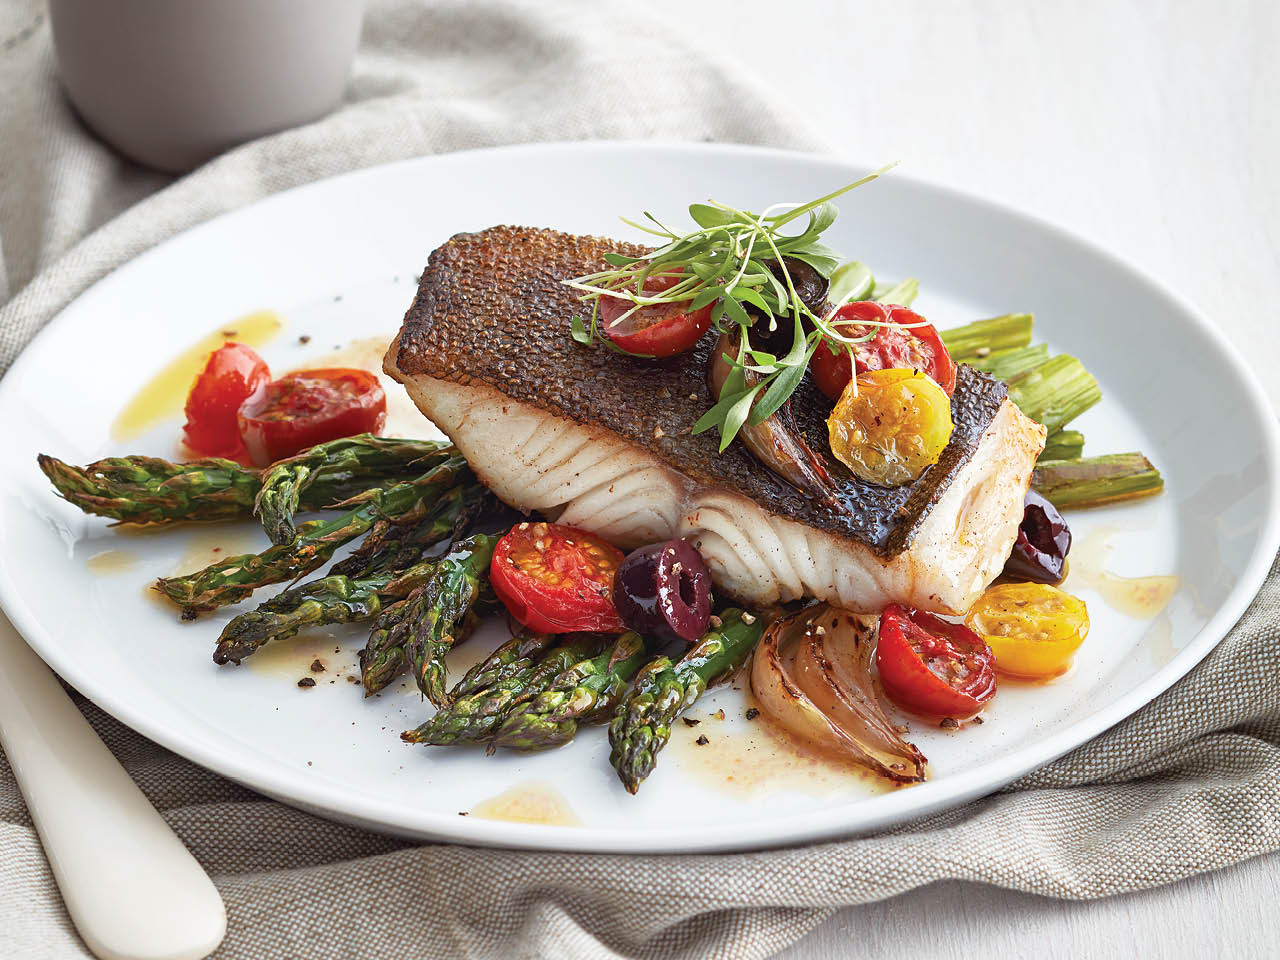 Roasted black cod with tomatoes and asparagus on white plate